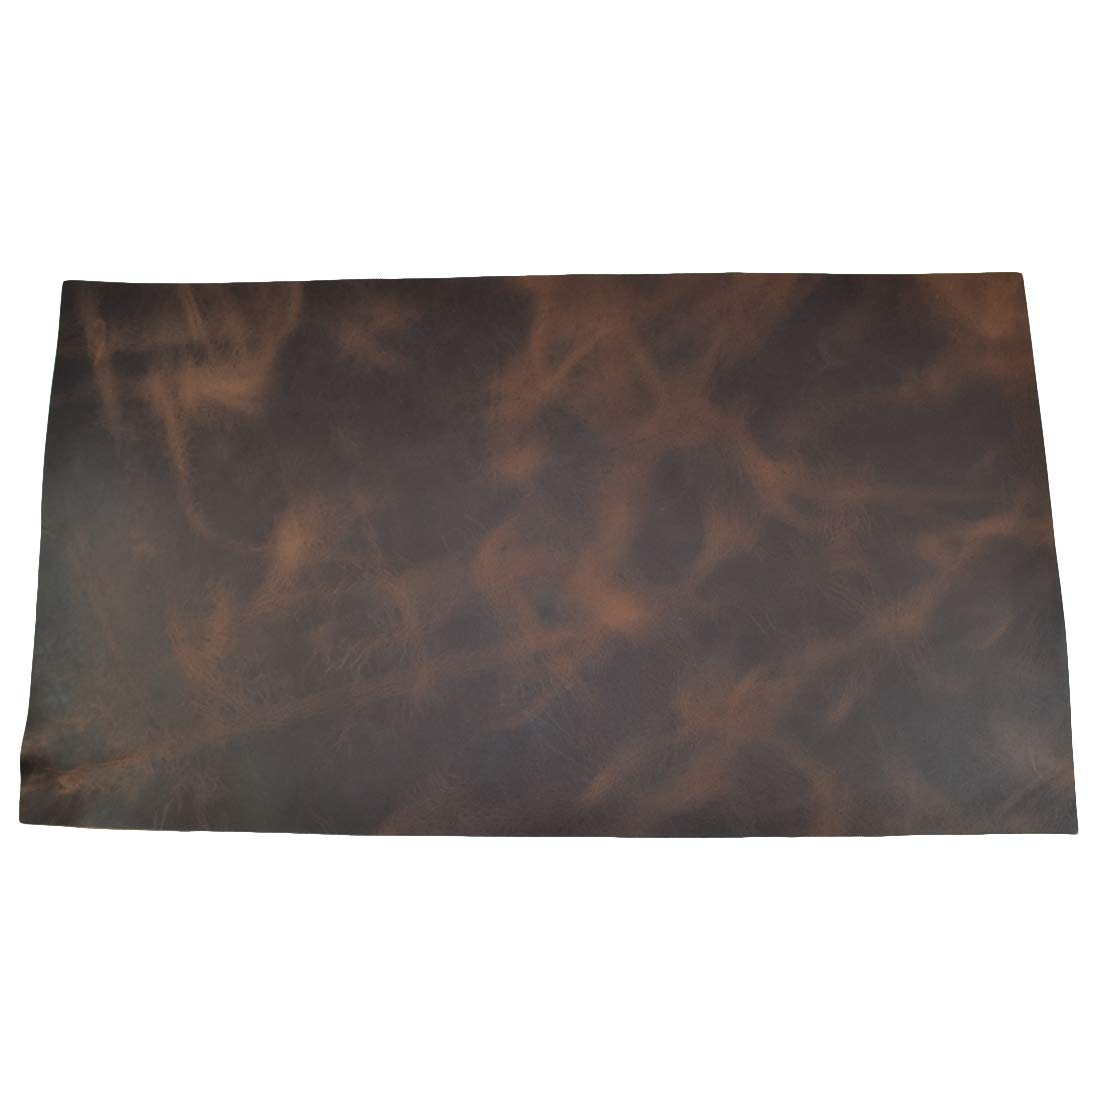 Leather Square (10''x18'') for Crafts/Tooling/Hobby Workshop, Medium Weight (1.8mm) by Hide & Drink :: Bourbon Brown